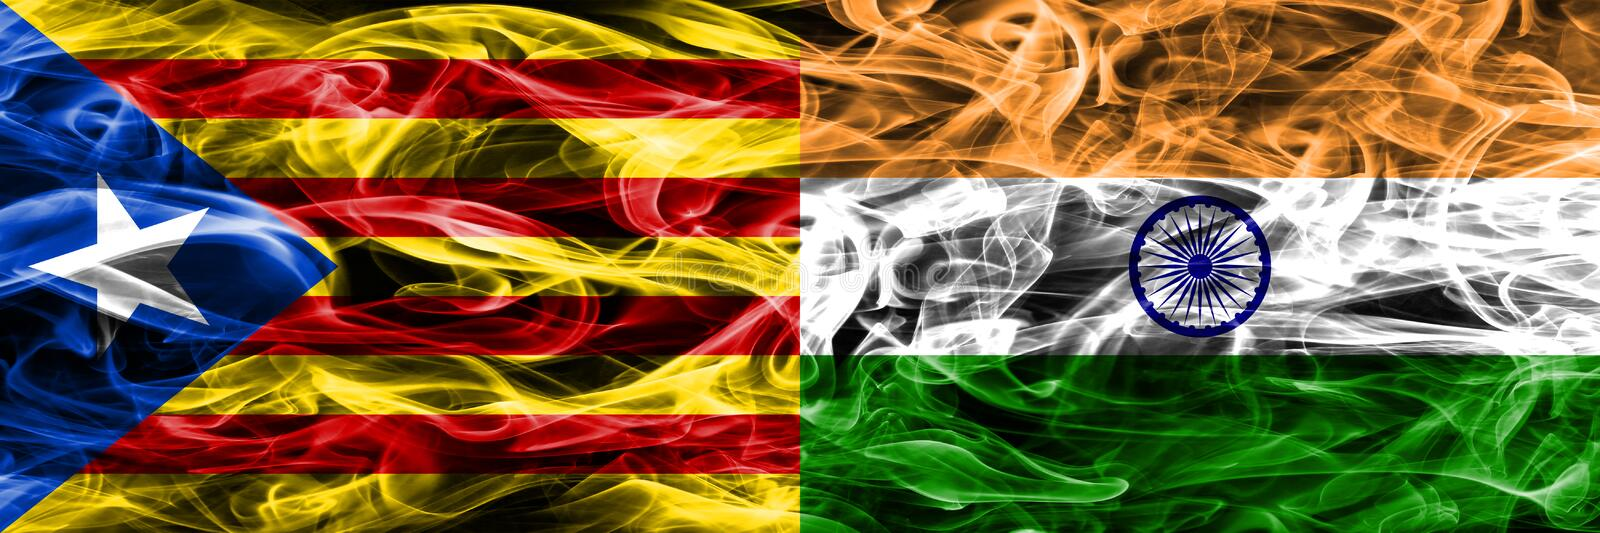 Catalonia vs India copy smoke flags placed side by side. Thick colored silky smoke flags of Catalan and India copy.  vector illustration